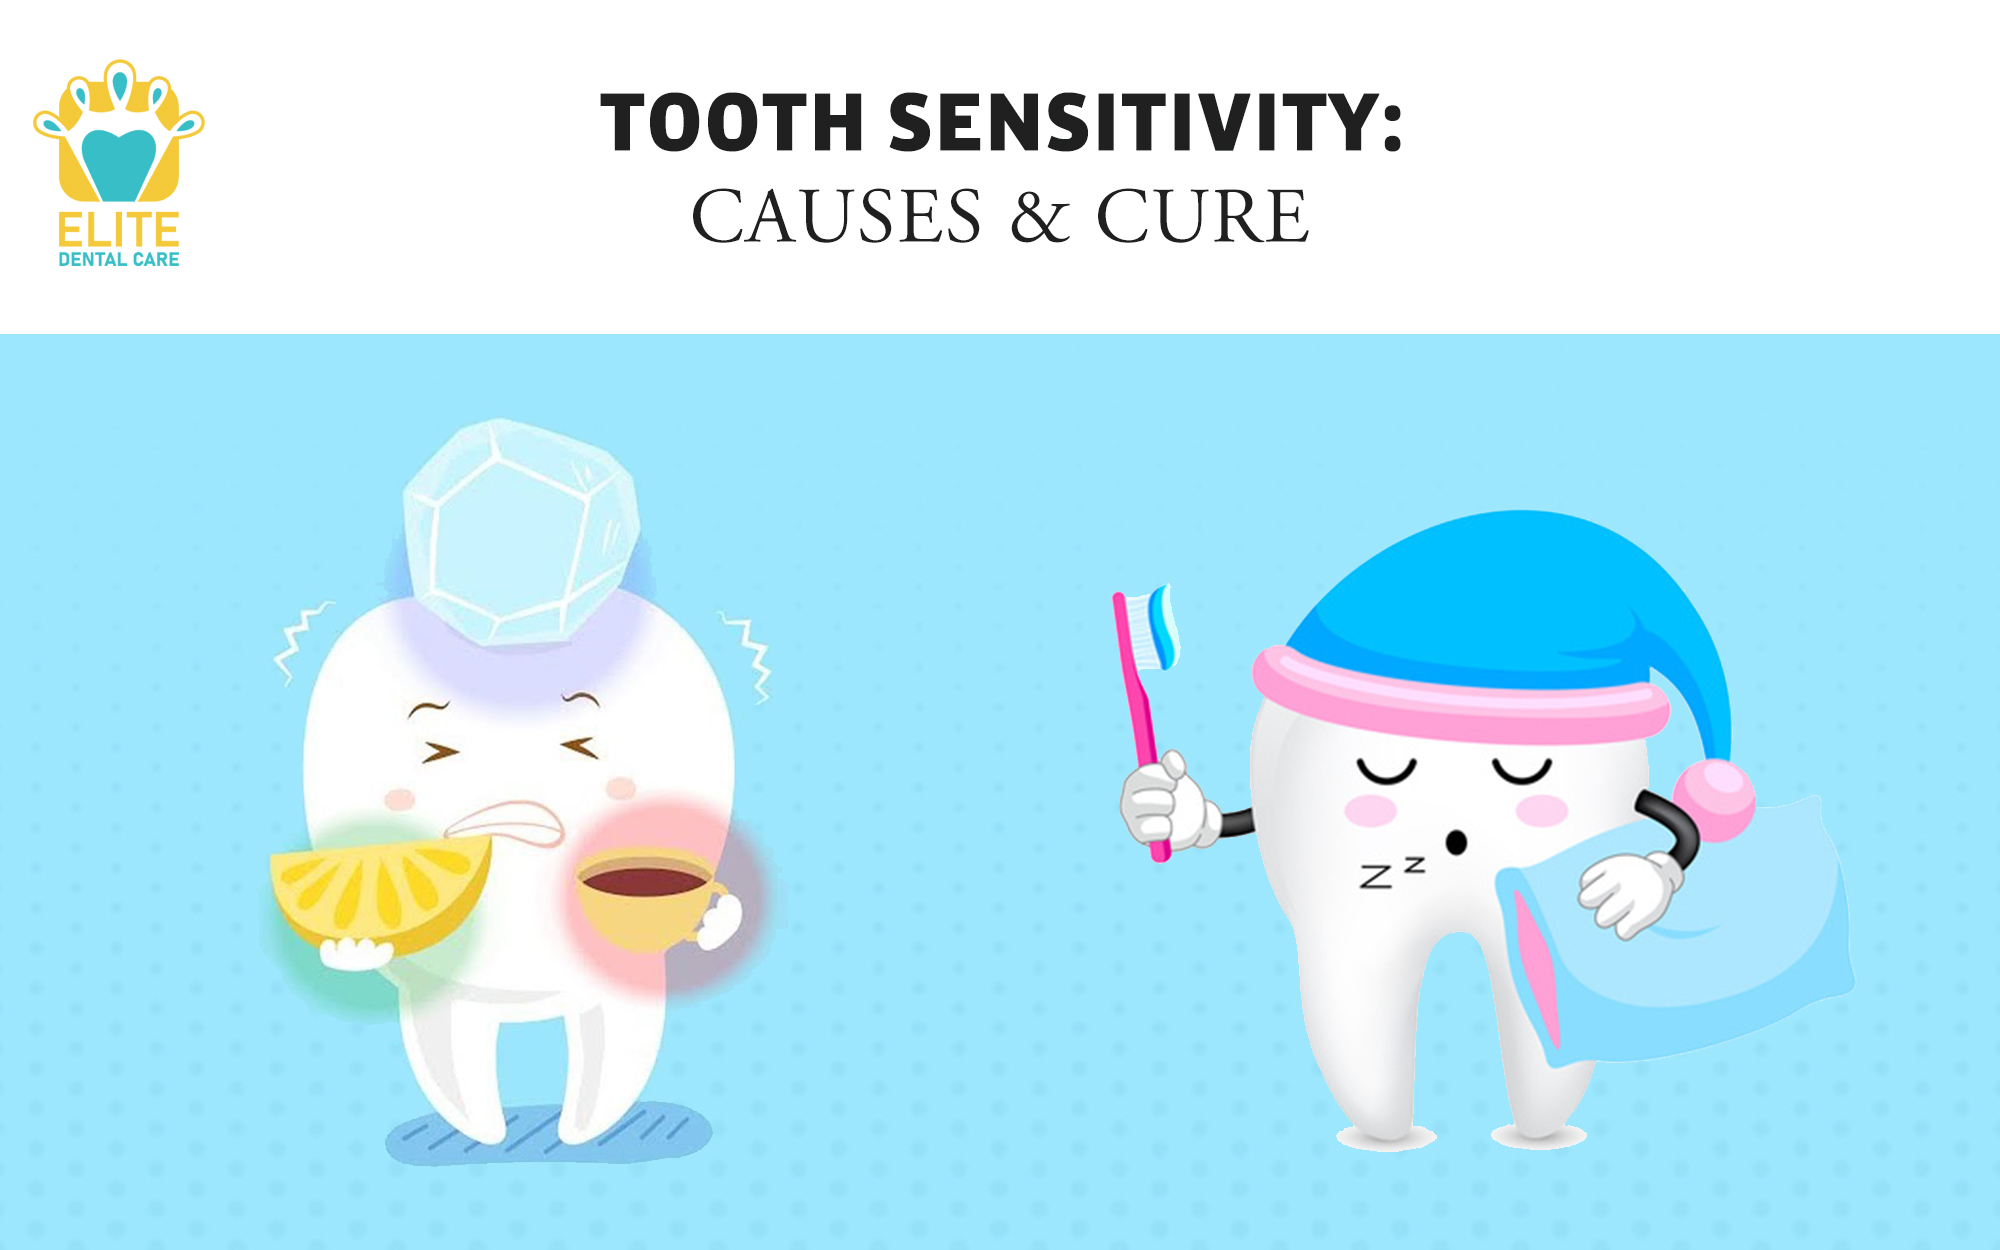 TEETH SENSITIVITY: CAUSES AND CURE